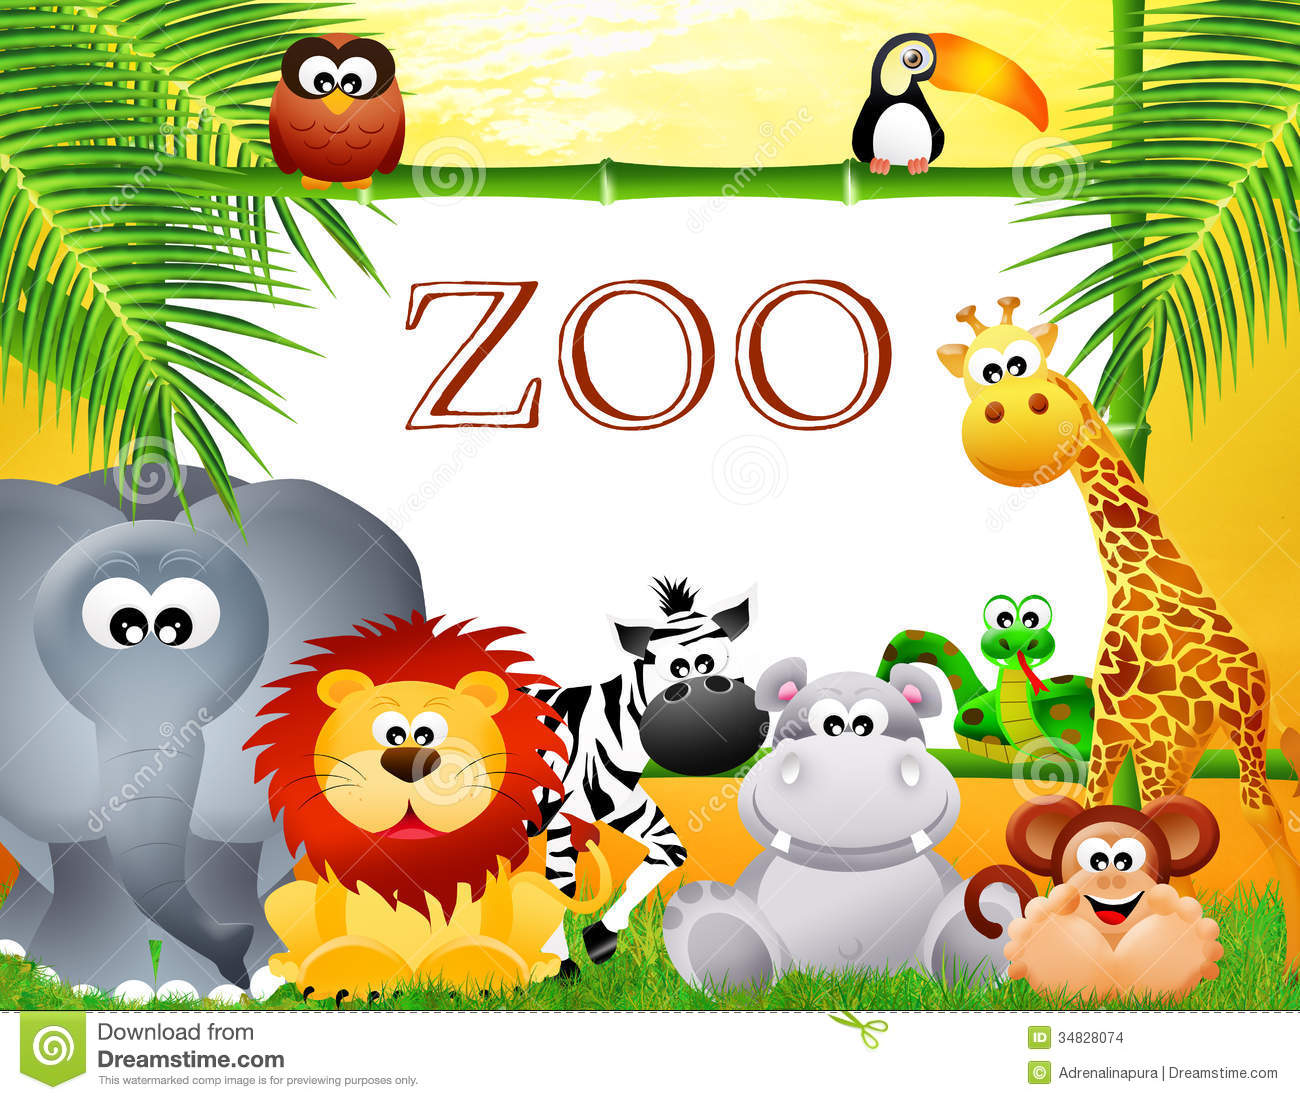 essay on zoo for kids